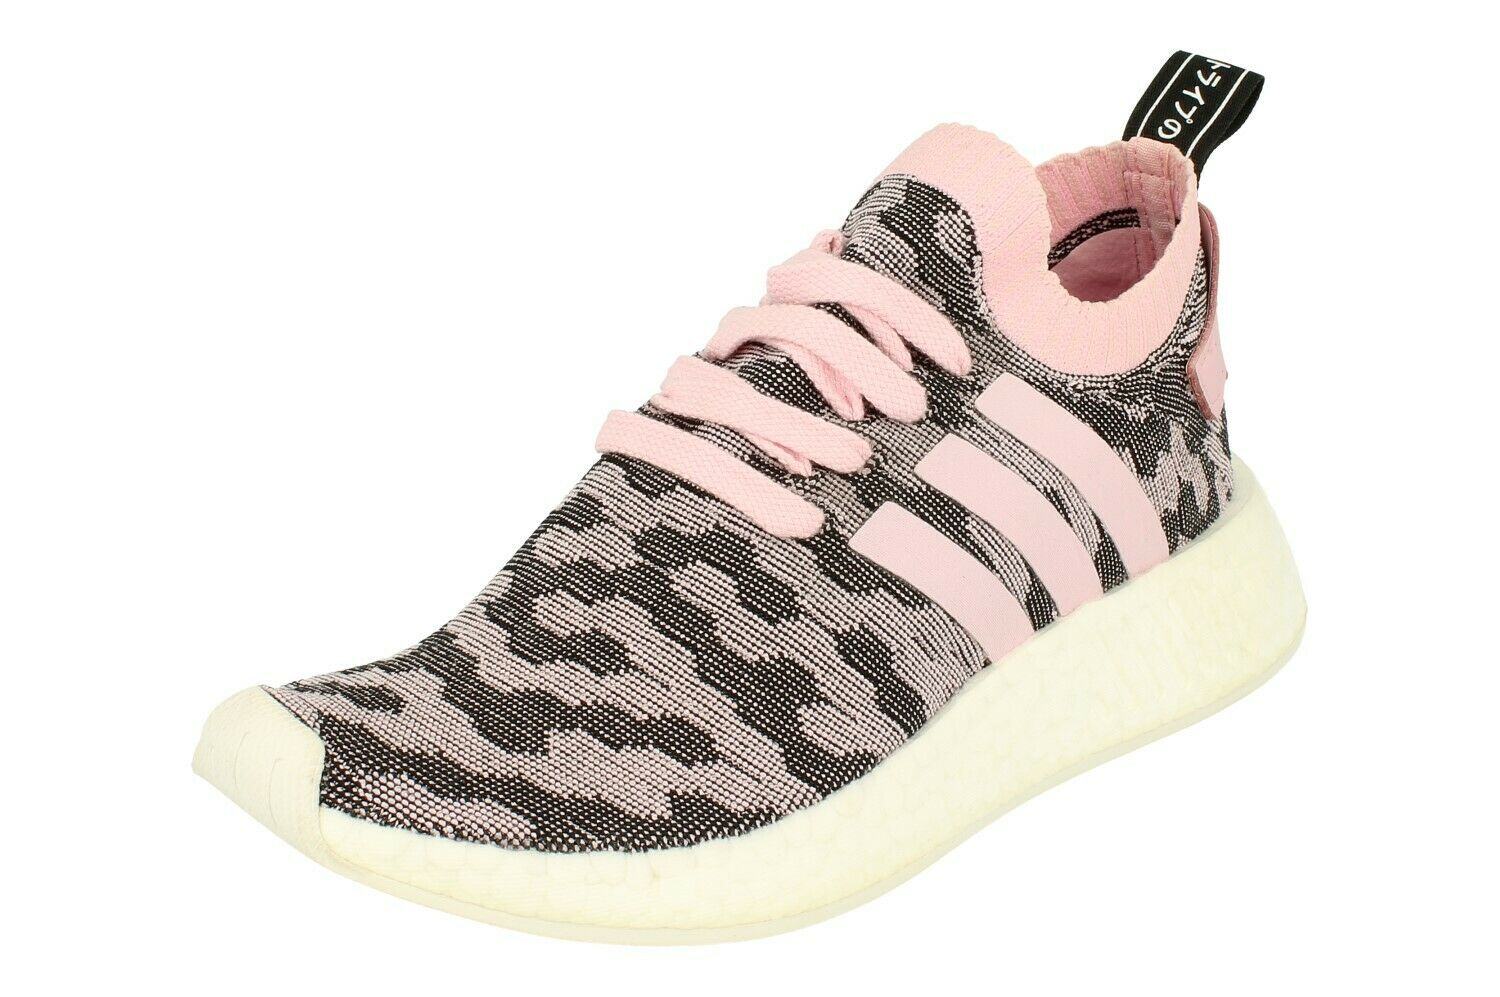 Adidas Originals Nmd_R2 Pk Womens Running Trainers Sneakers BY9521